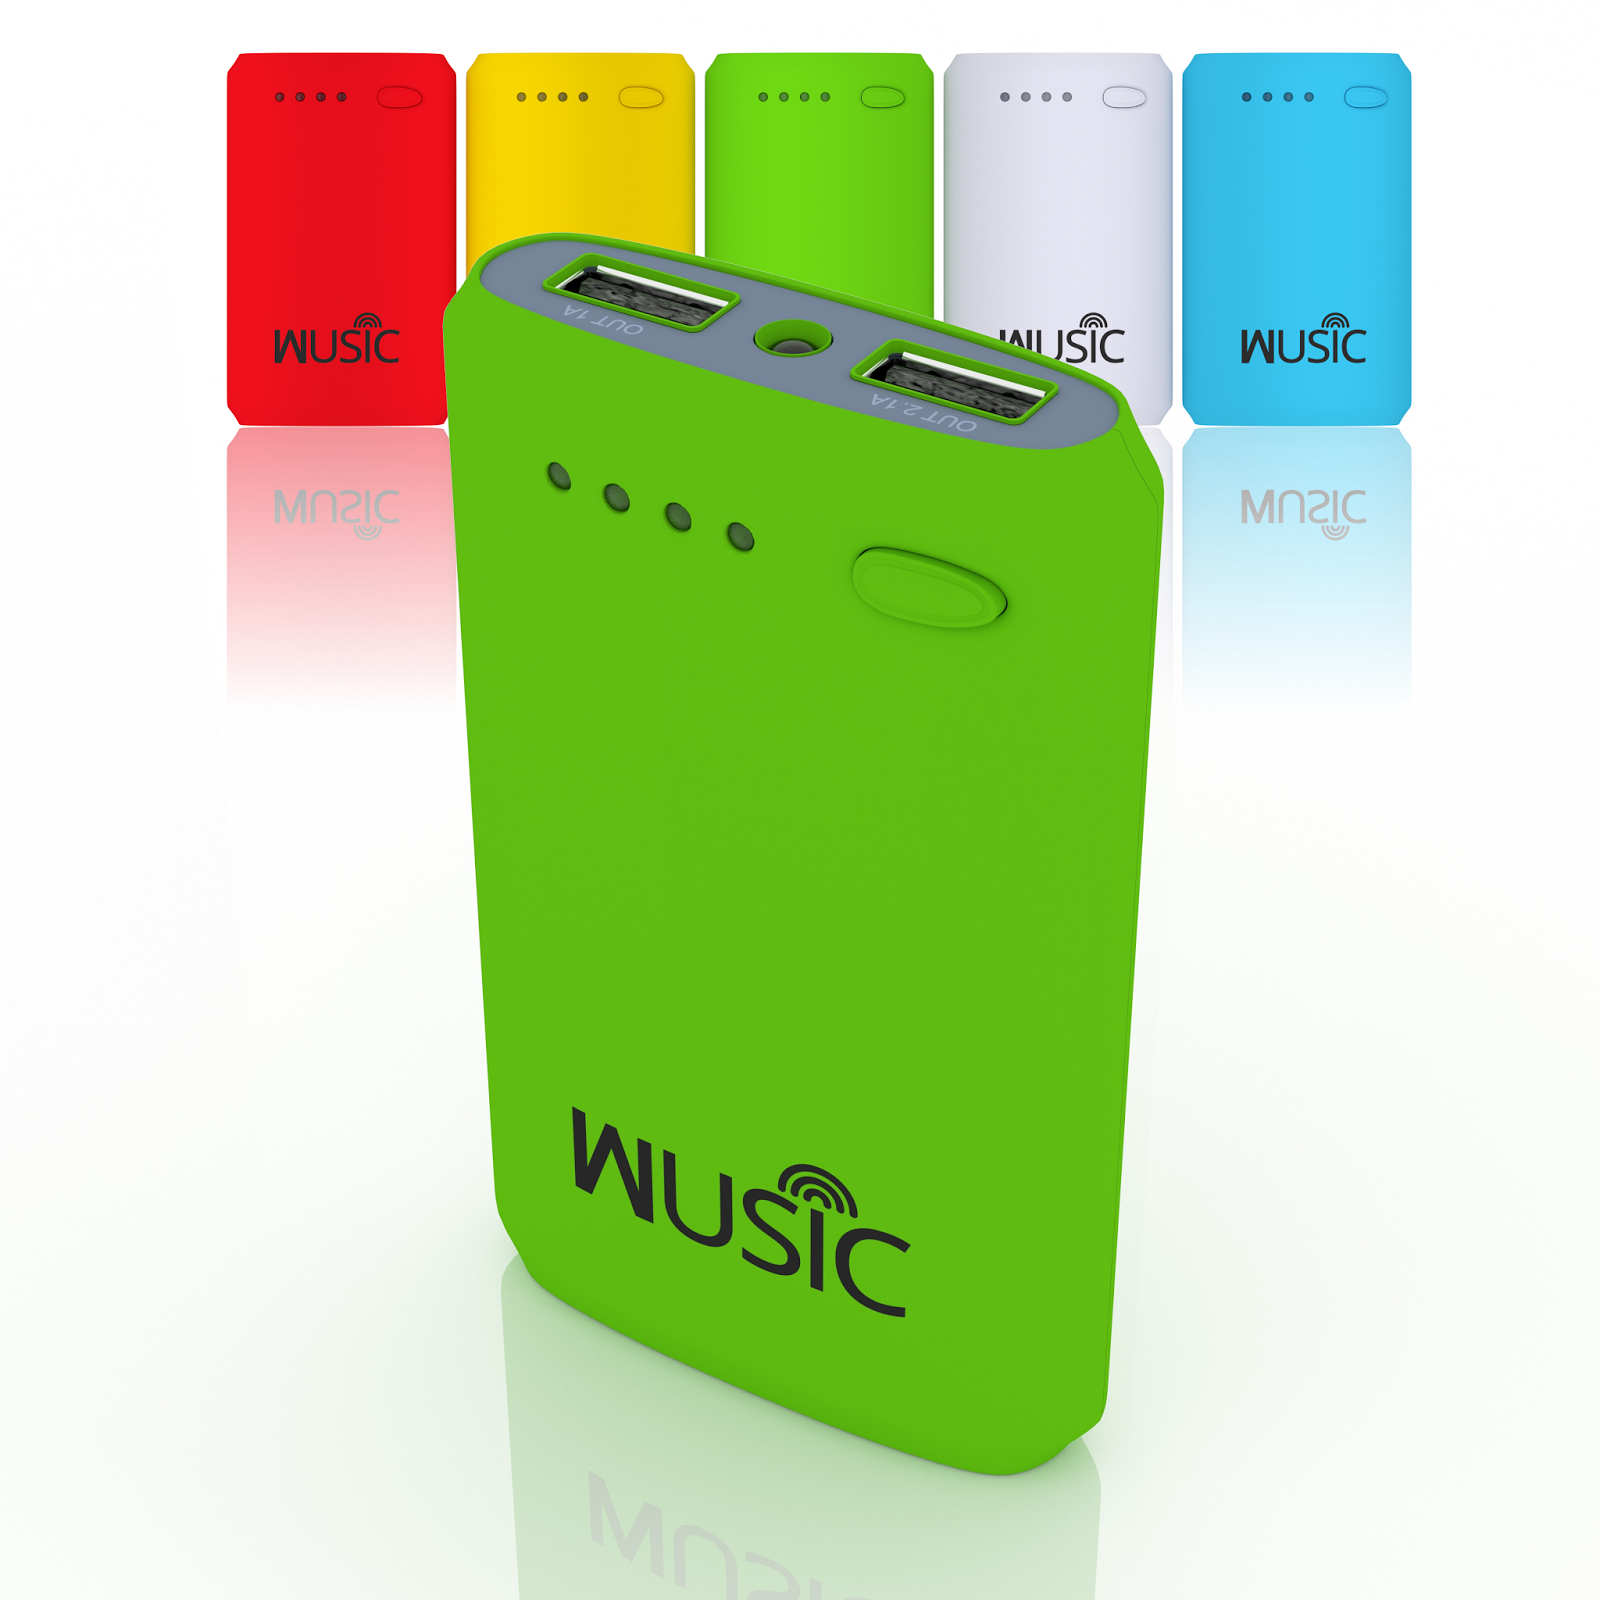 Wusic Portable Power Bank Review and Giveaway. Ends 7/8